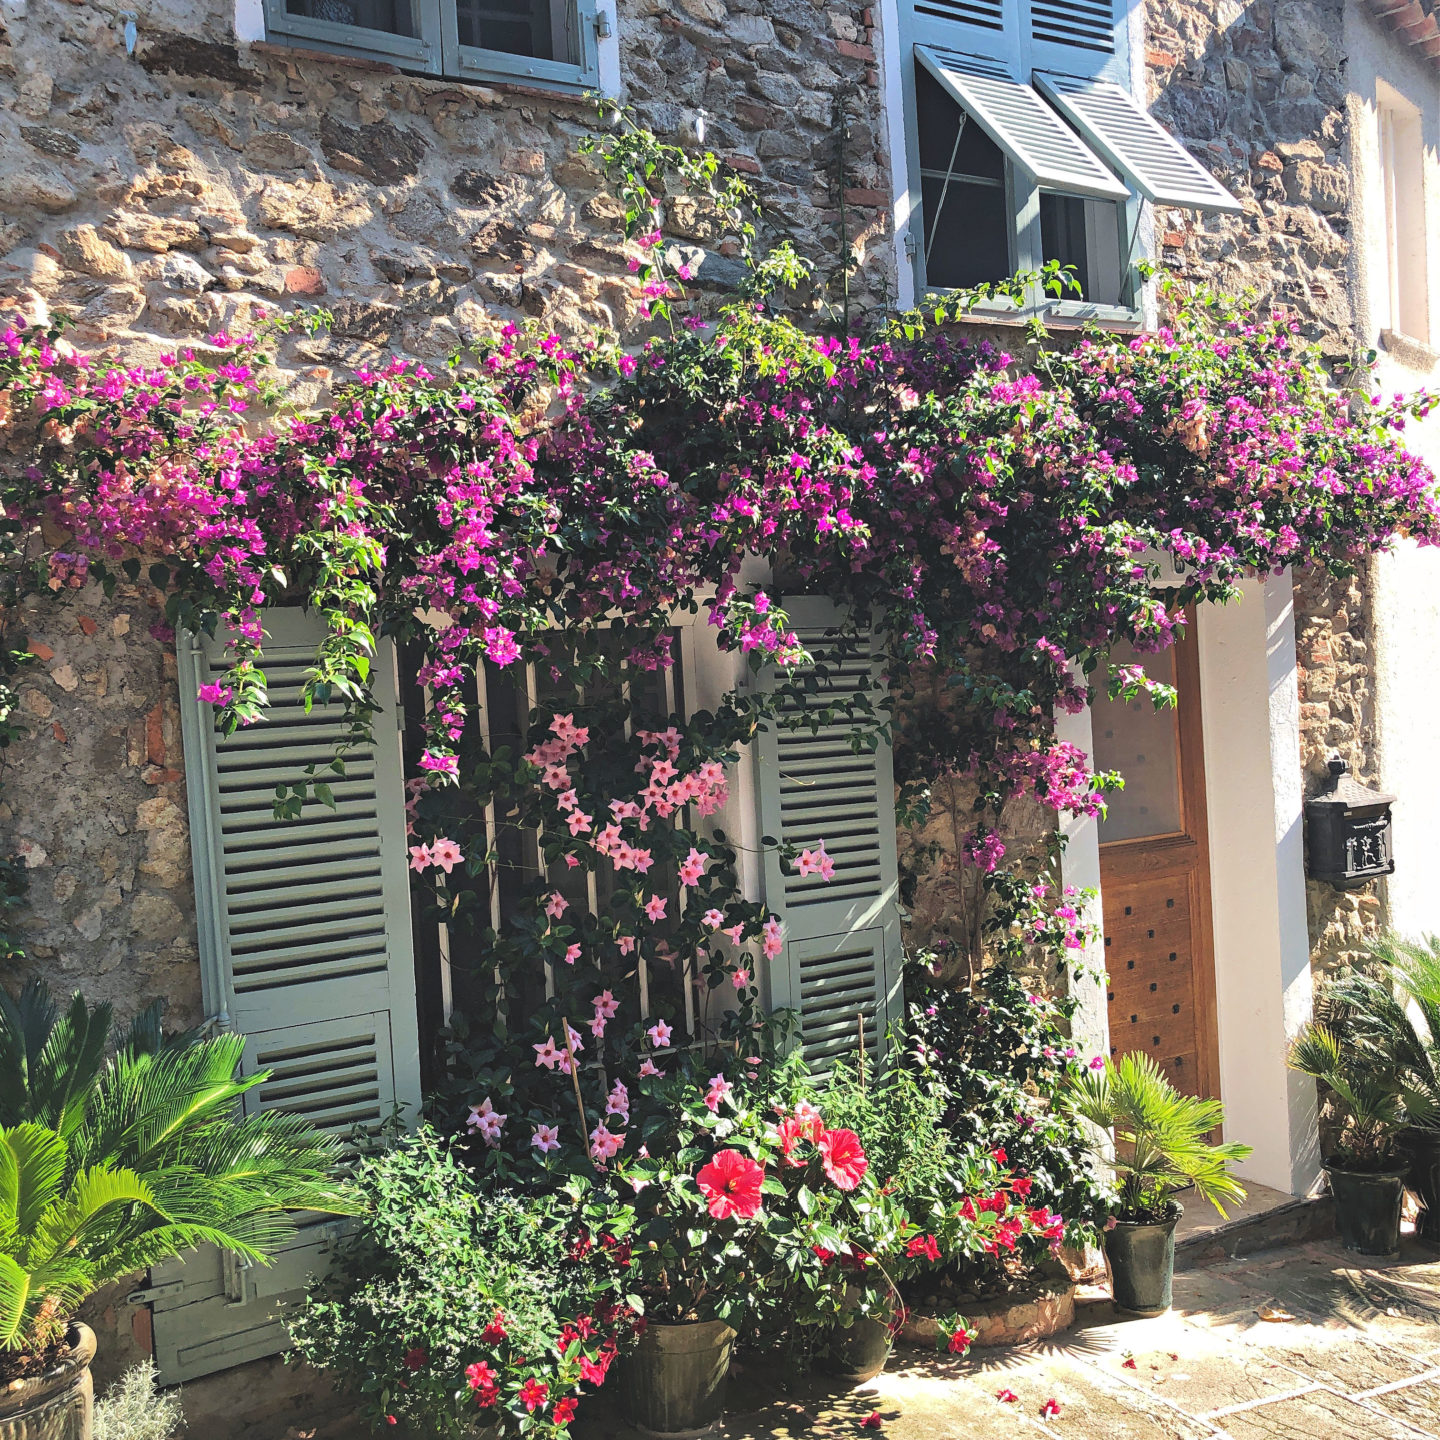 Grimaud village in flower